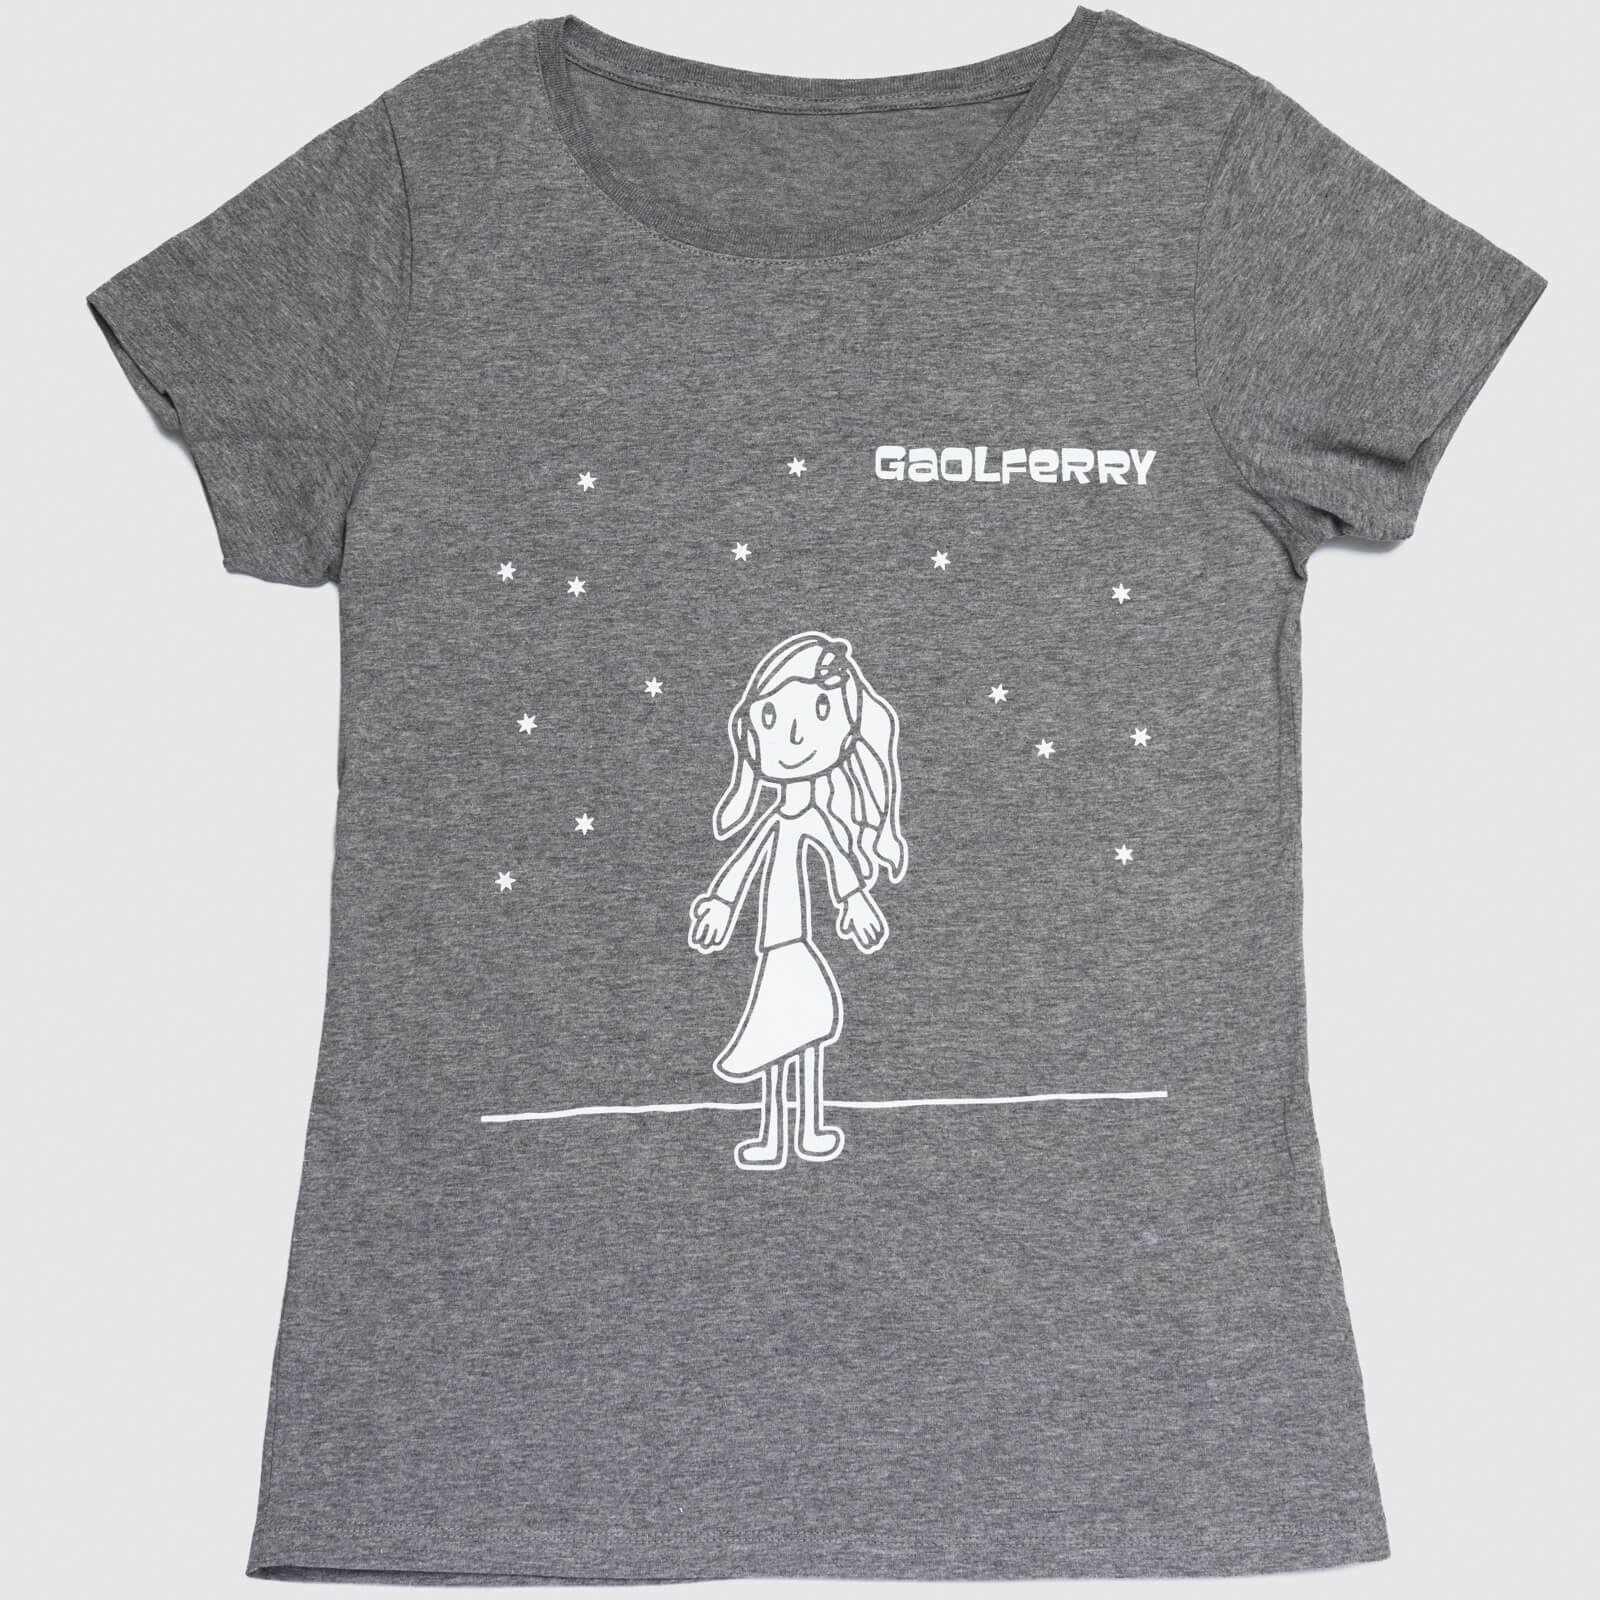 gaolferry mid heather grey t-shirt with screen printed image of a girl looking up at the stars